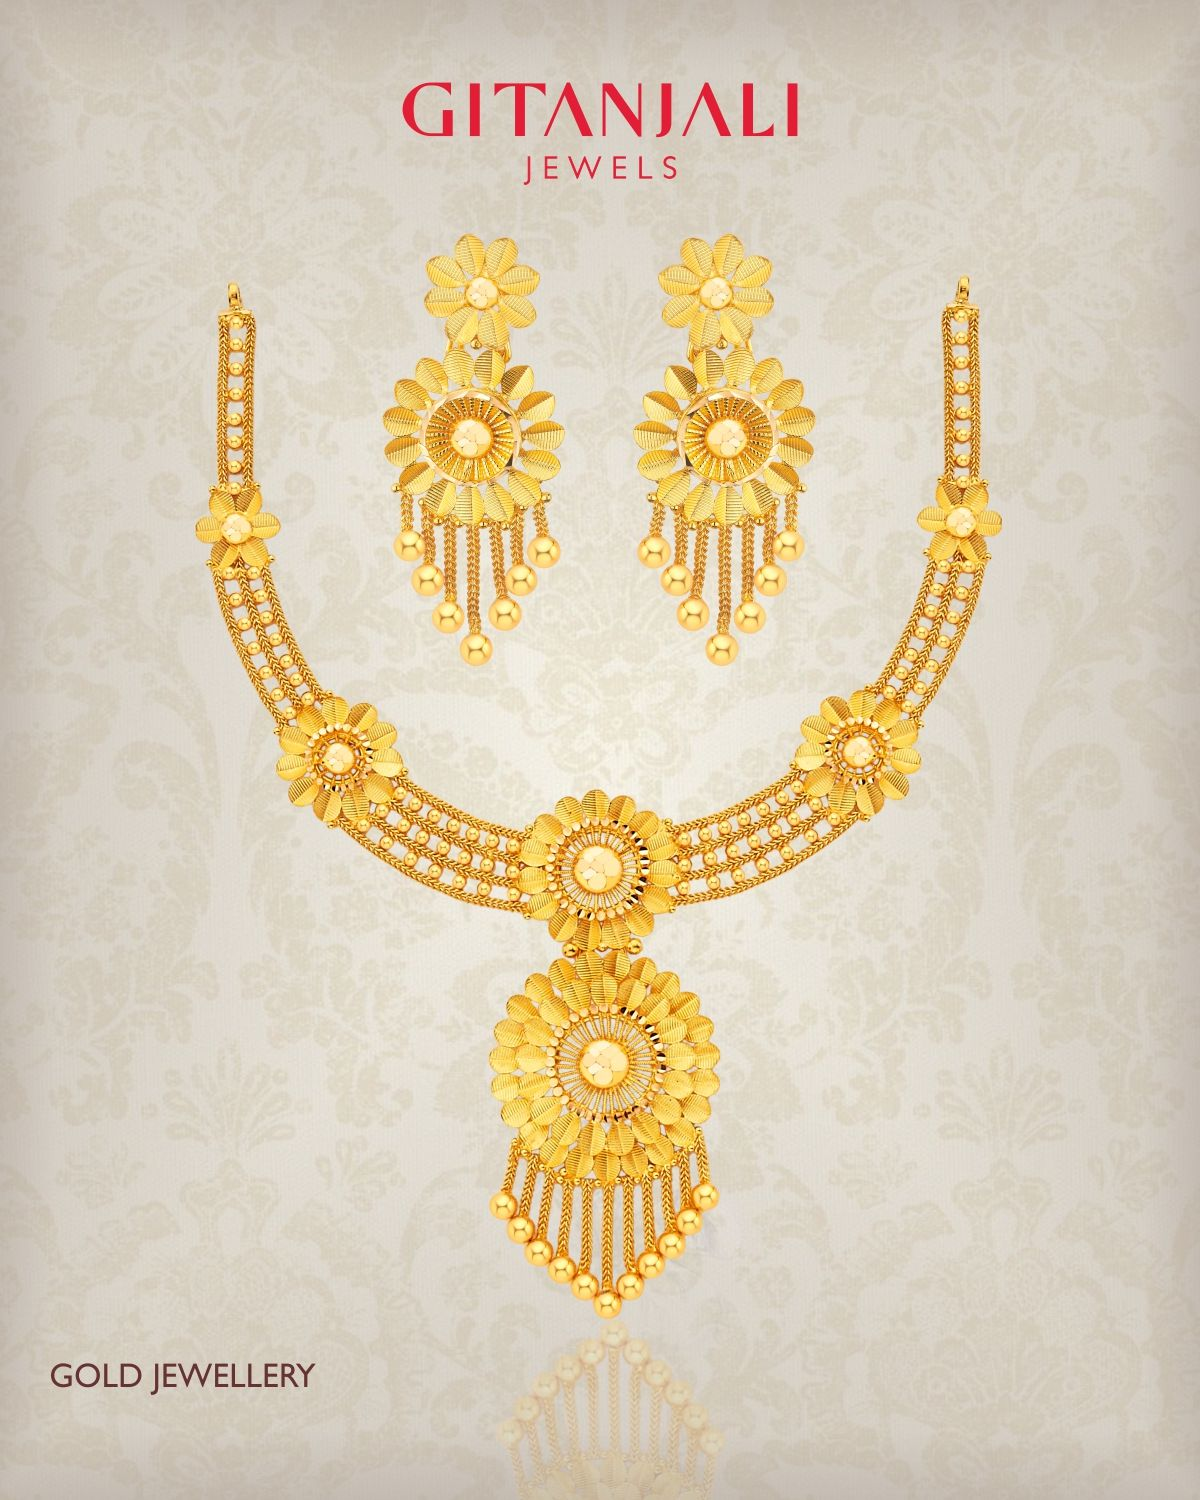 Adorn yourself with this gorgeous #22kt #Gold #necklaceset from #GitanjaliJewels crafted in an intricate tasselled floral pattern and let your style speak for you. #GitanjaliJewels #goldjewellery #plaingold #necklaceset #necklace #earrings #22kt